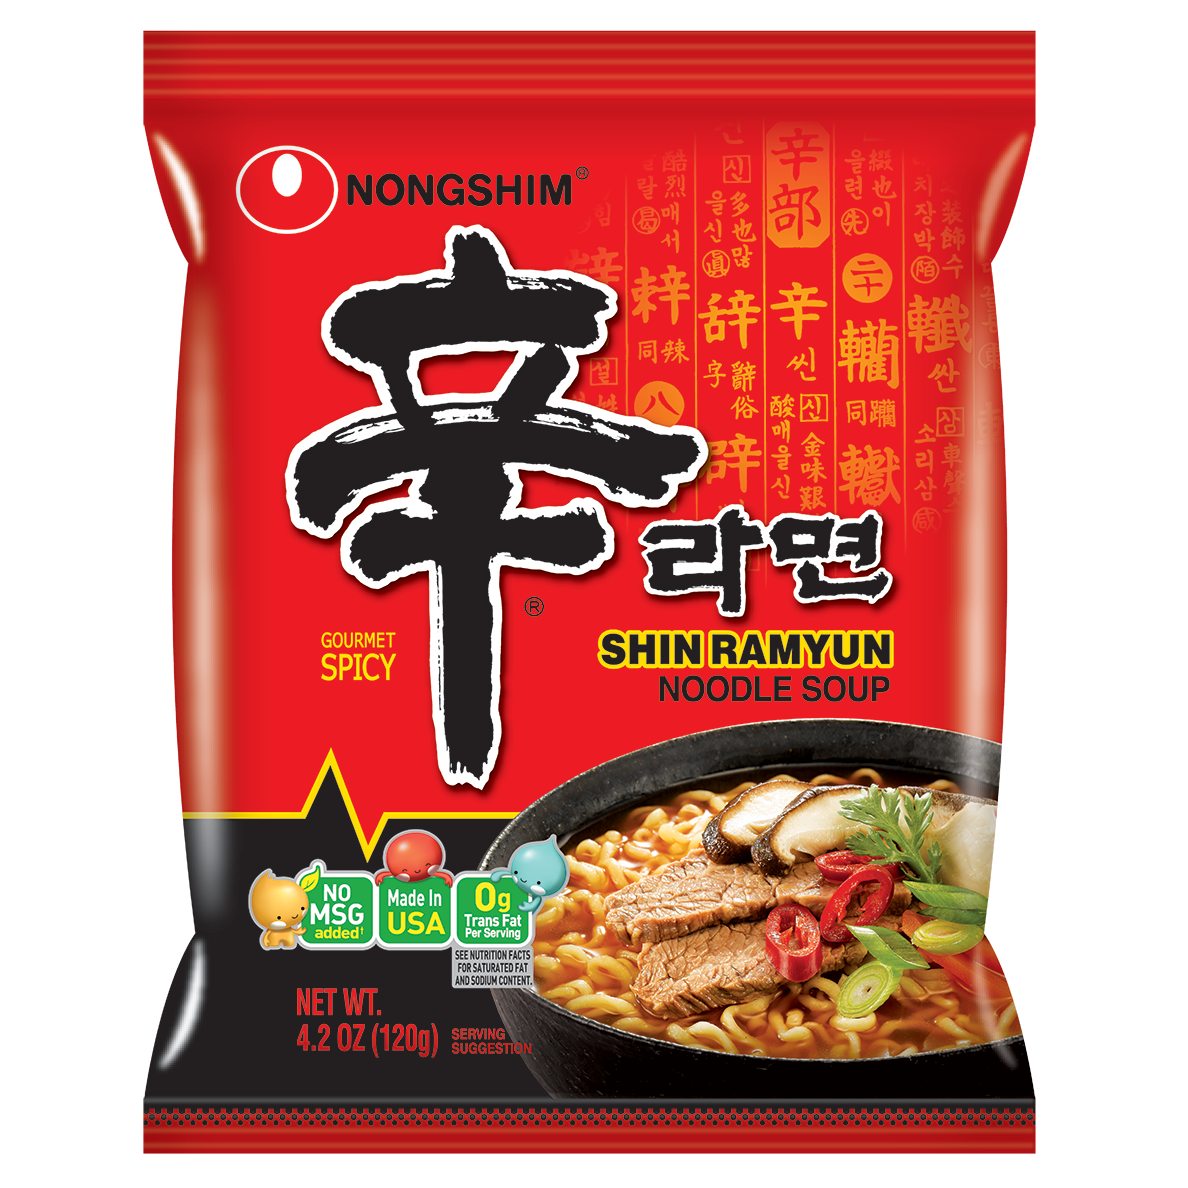 Nongshim Shin Ramyun Noodle Soup, Gourmet Spicy, 4.2 Ounce (Pack of 20